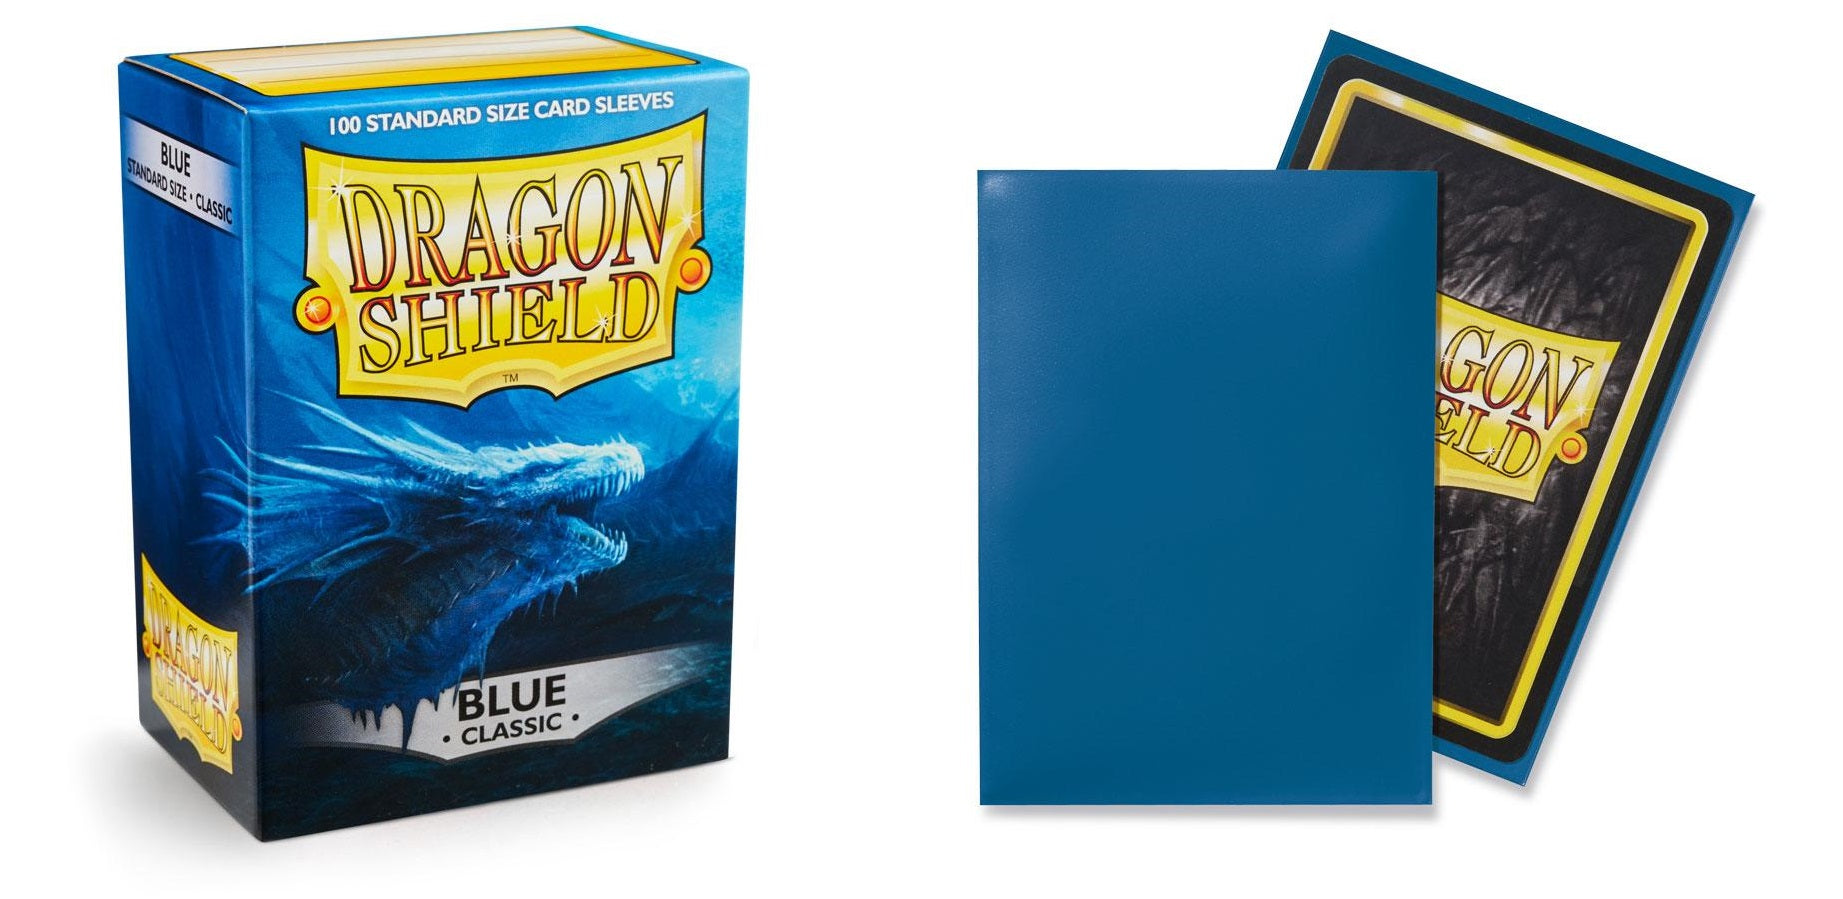 Classic Blue Dragon Shield Sleeves (100ct)-Dragon Shield-Multizone: Comics And Games | Multizone: Comics And Games